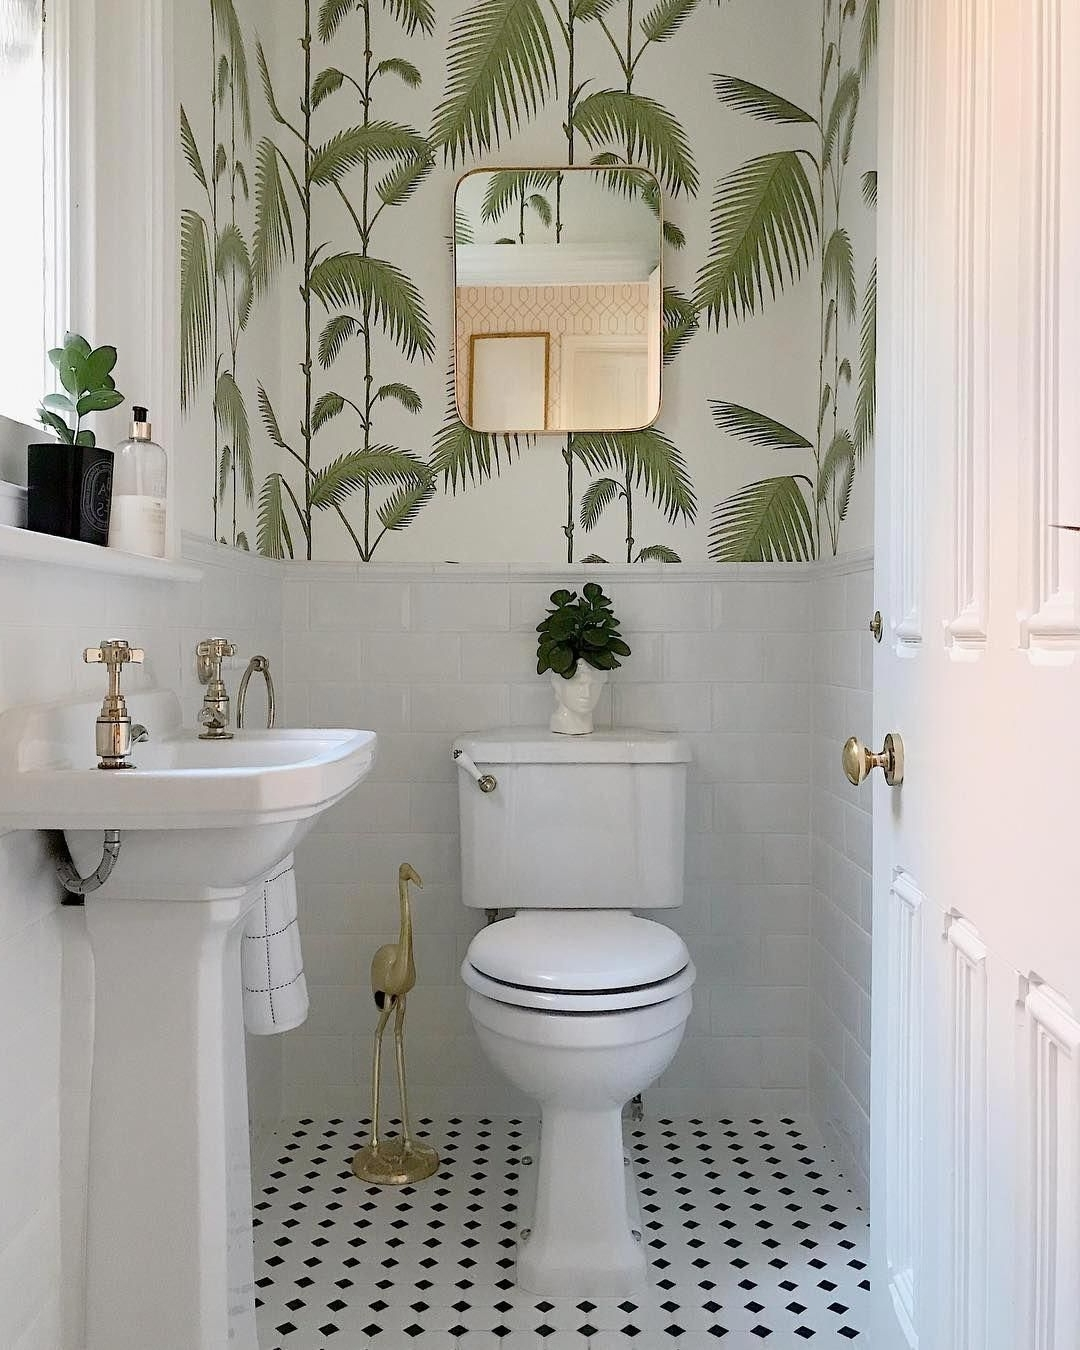 A Beautiful White Bathroom With Gold Accessories And 10+ Downstairs Bathroom Wallpaper Inspirations